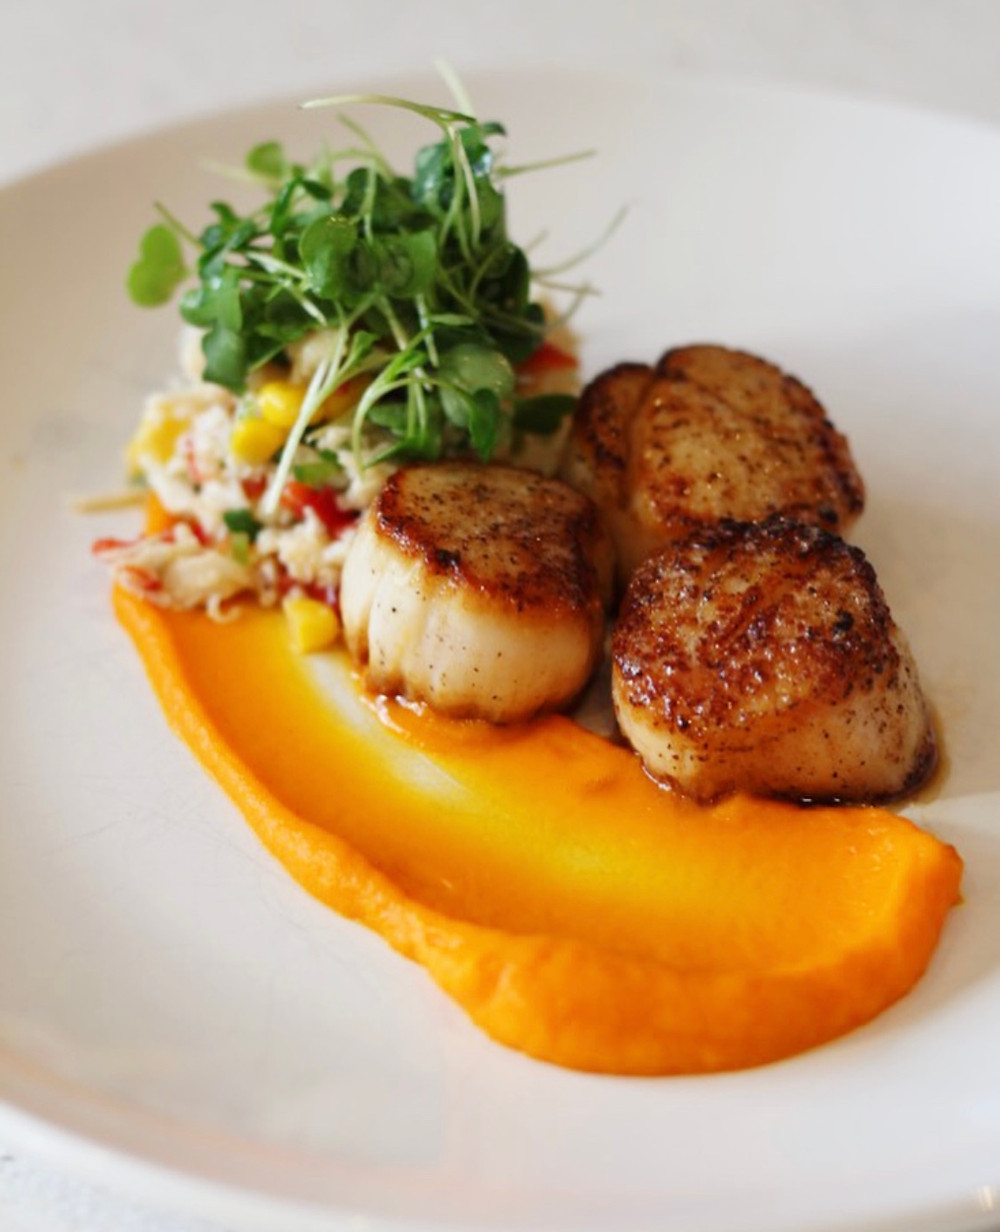 Seared scallops with corn and crab salad